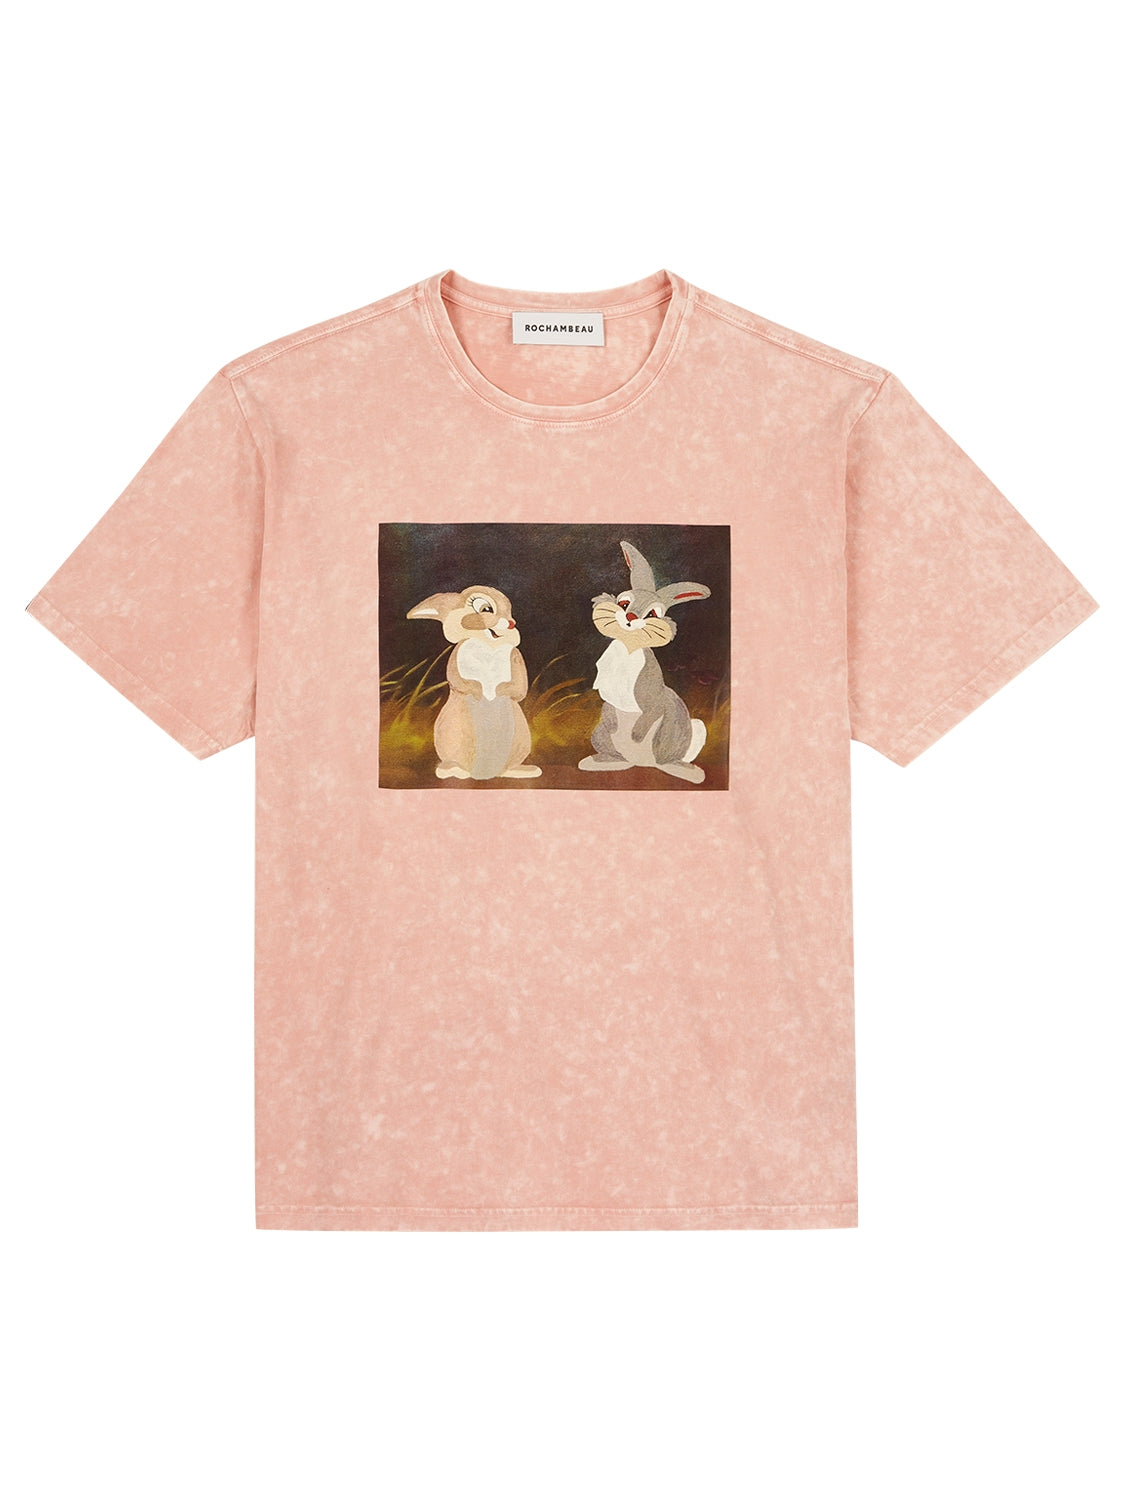 Thumper Tee - Pink